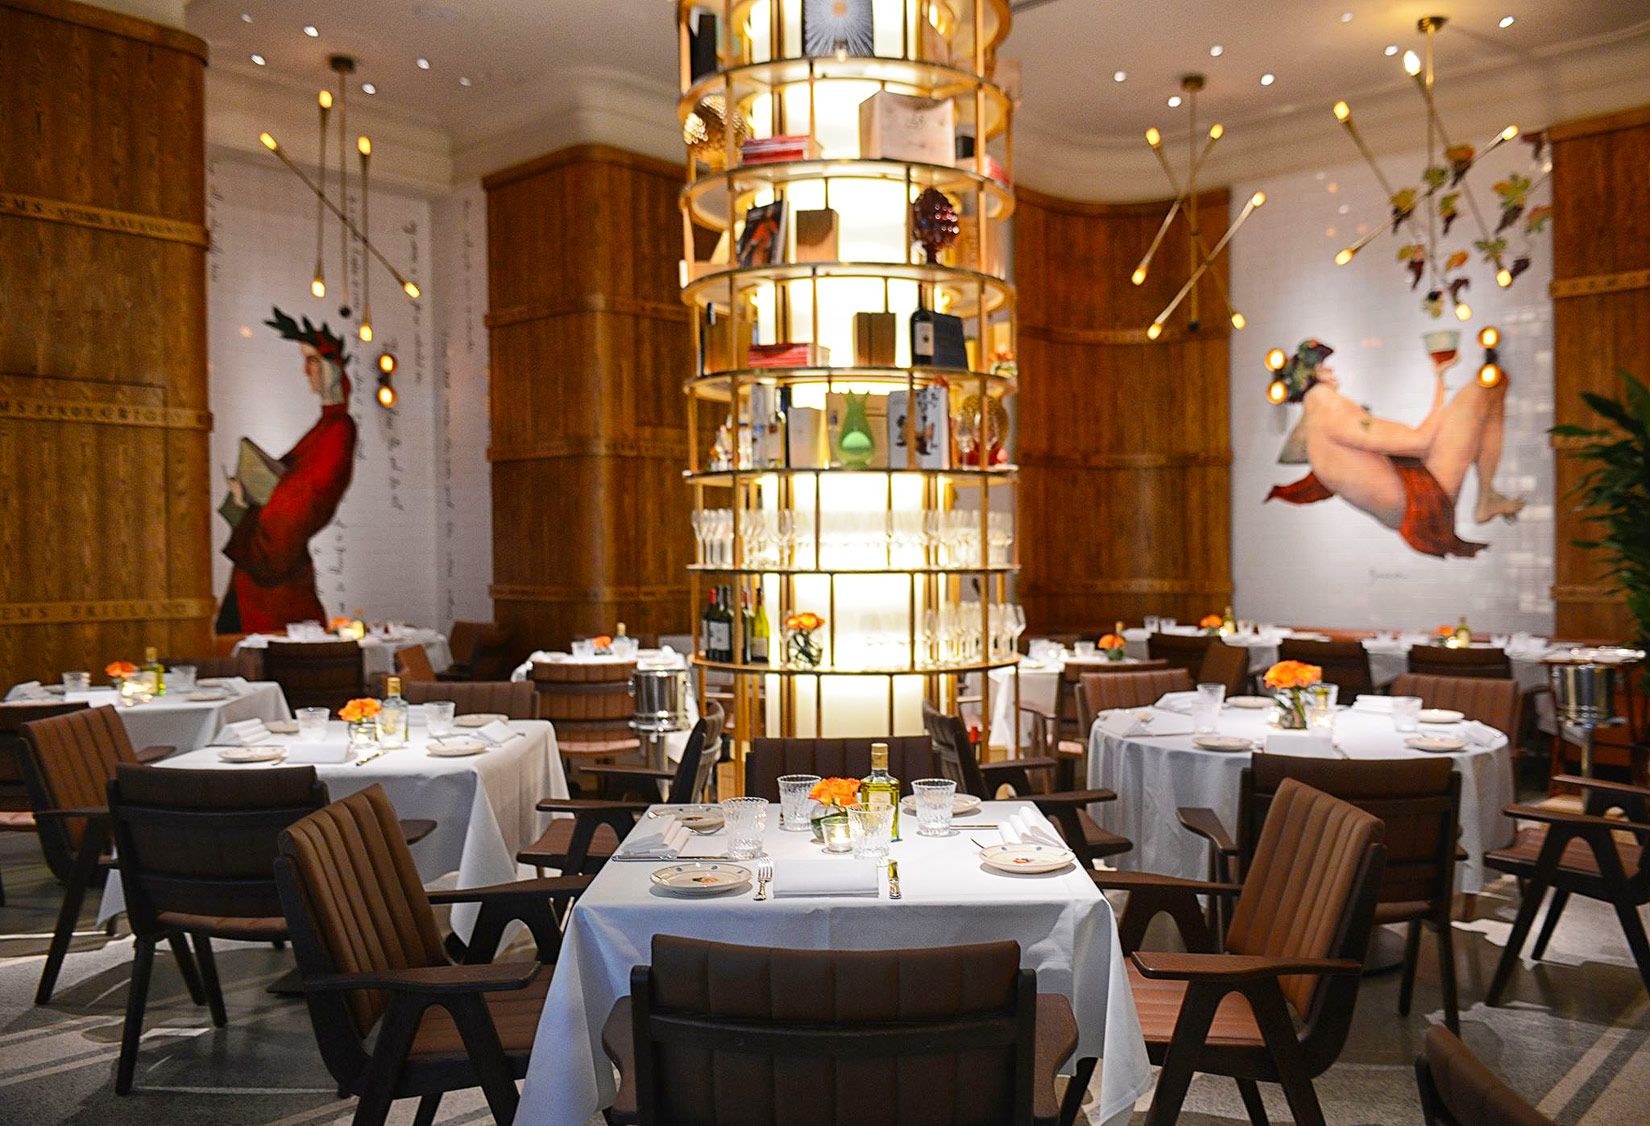 Ristorante Frescobaldi – A Taste Of Tuscany On London's Regent Street